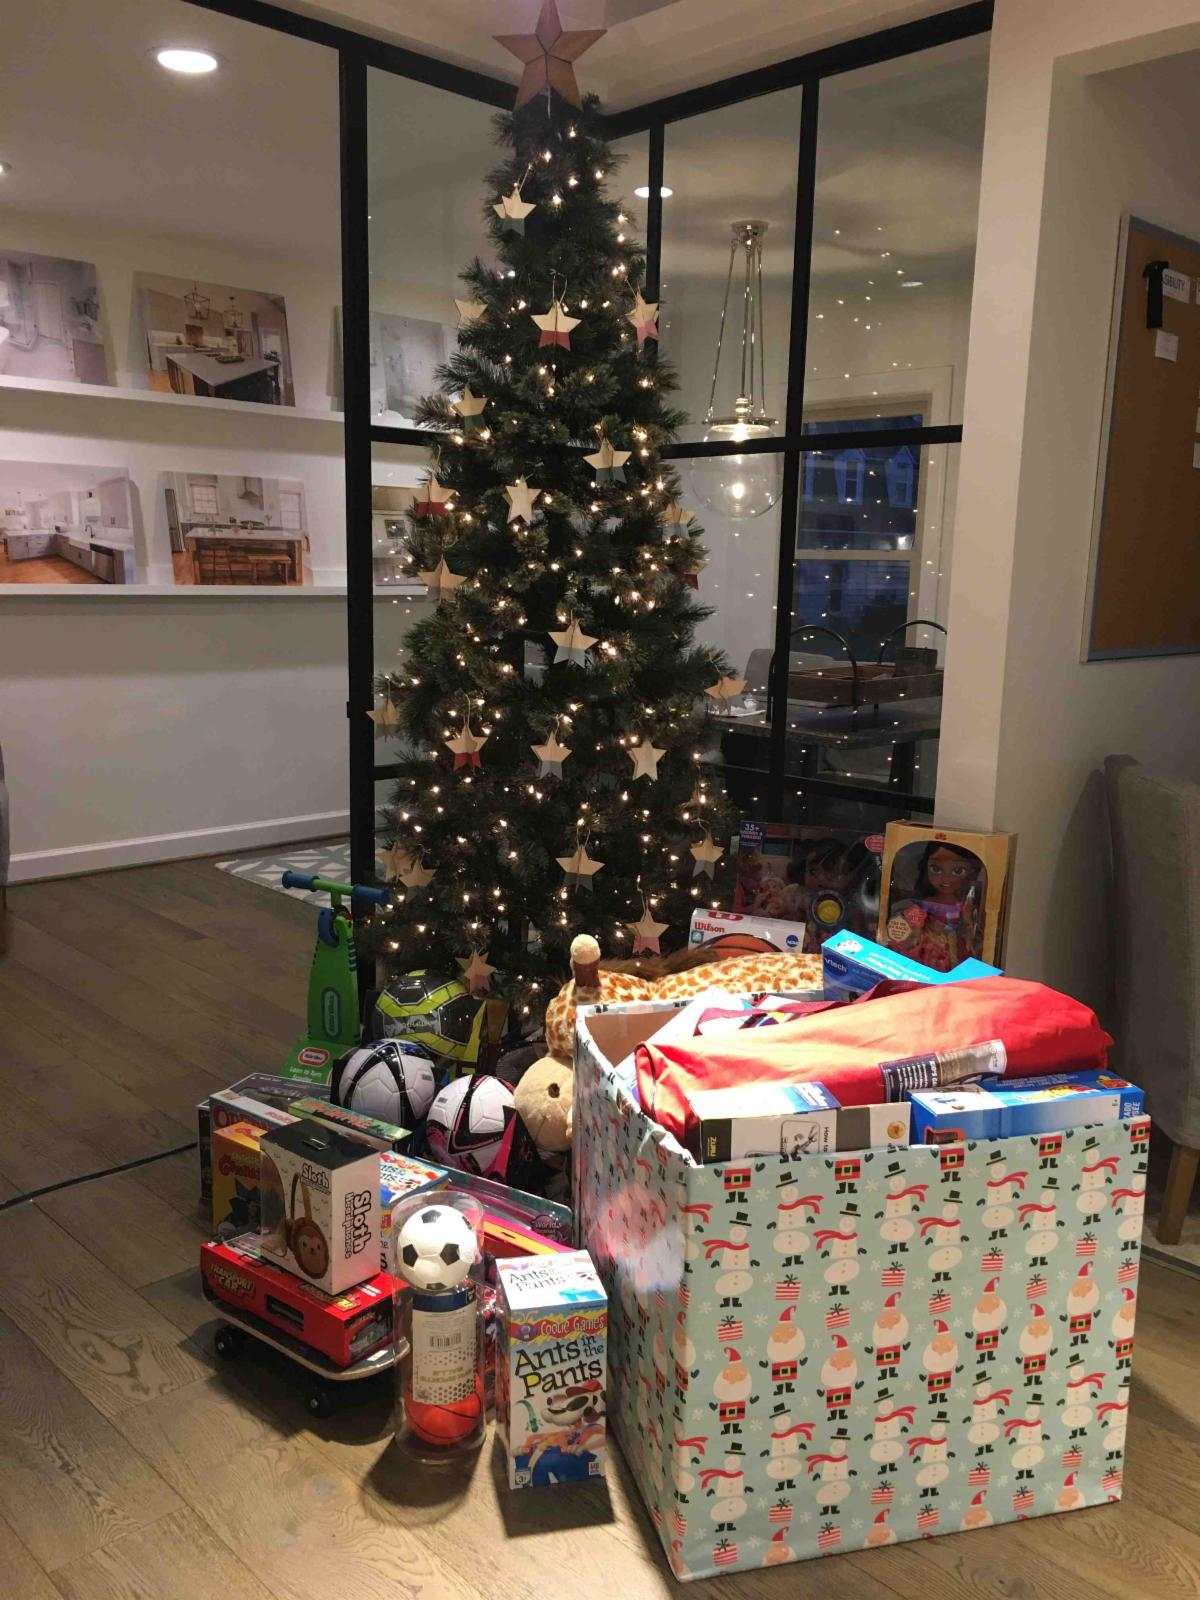 Toys for Tots Collection Hatchett Design Remodel Virginia Beach Showroom